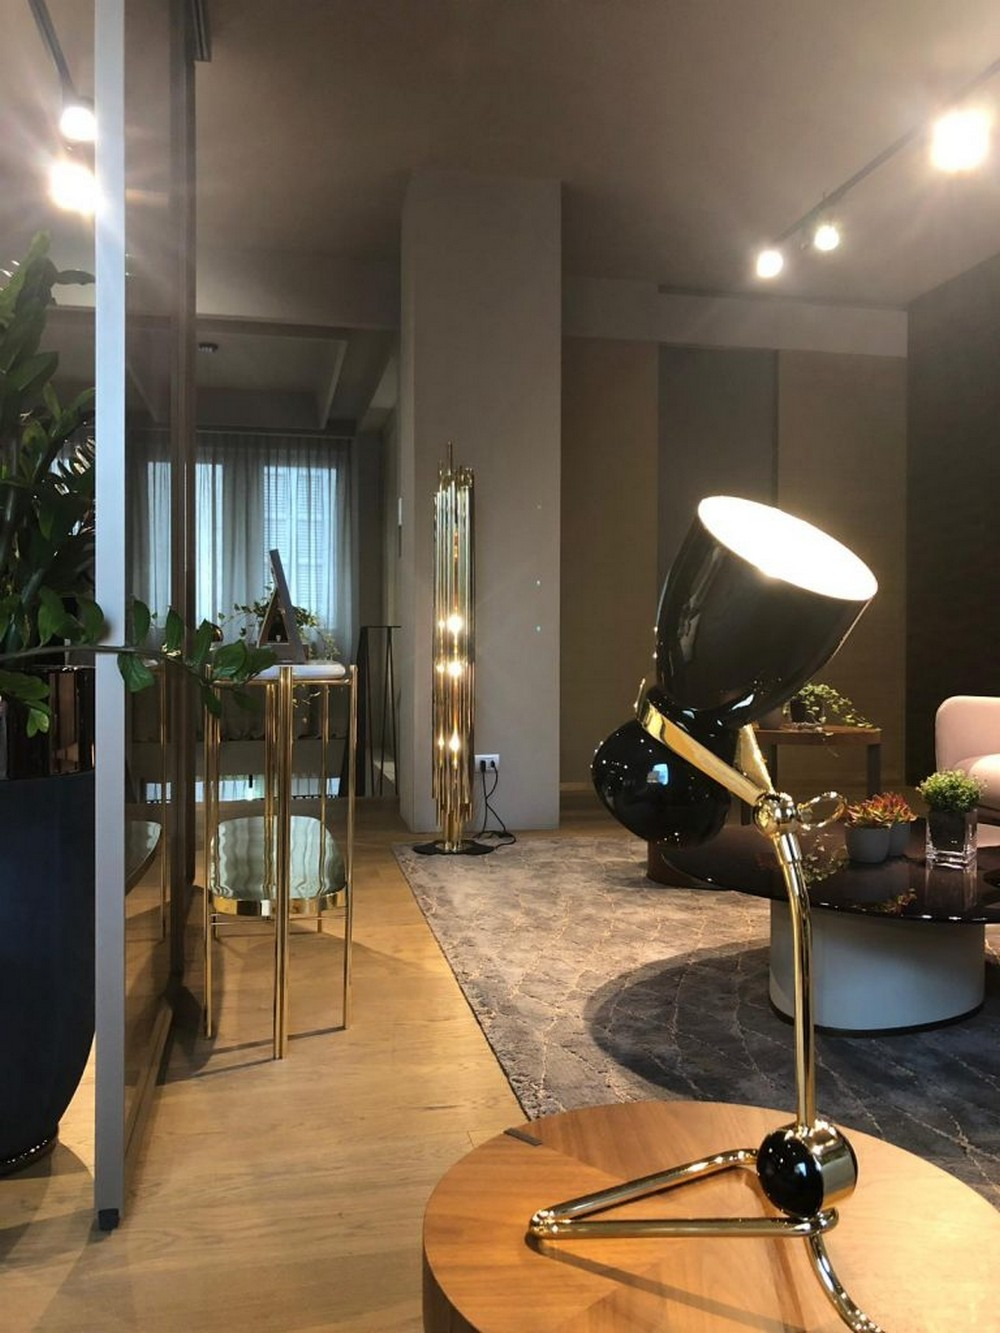 Bredaquaranta Showroom Sets The 2019 Design Trends In Milan bredaquaranta showroom Bredaquaranta Showroom Sets The 2019 Design Trends In Milan Bredaquaranta Showroom Sets The 2019 Design Trends In Milan 5